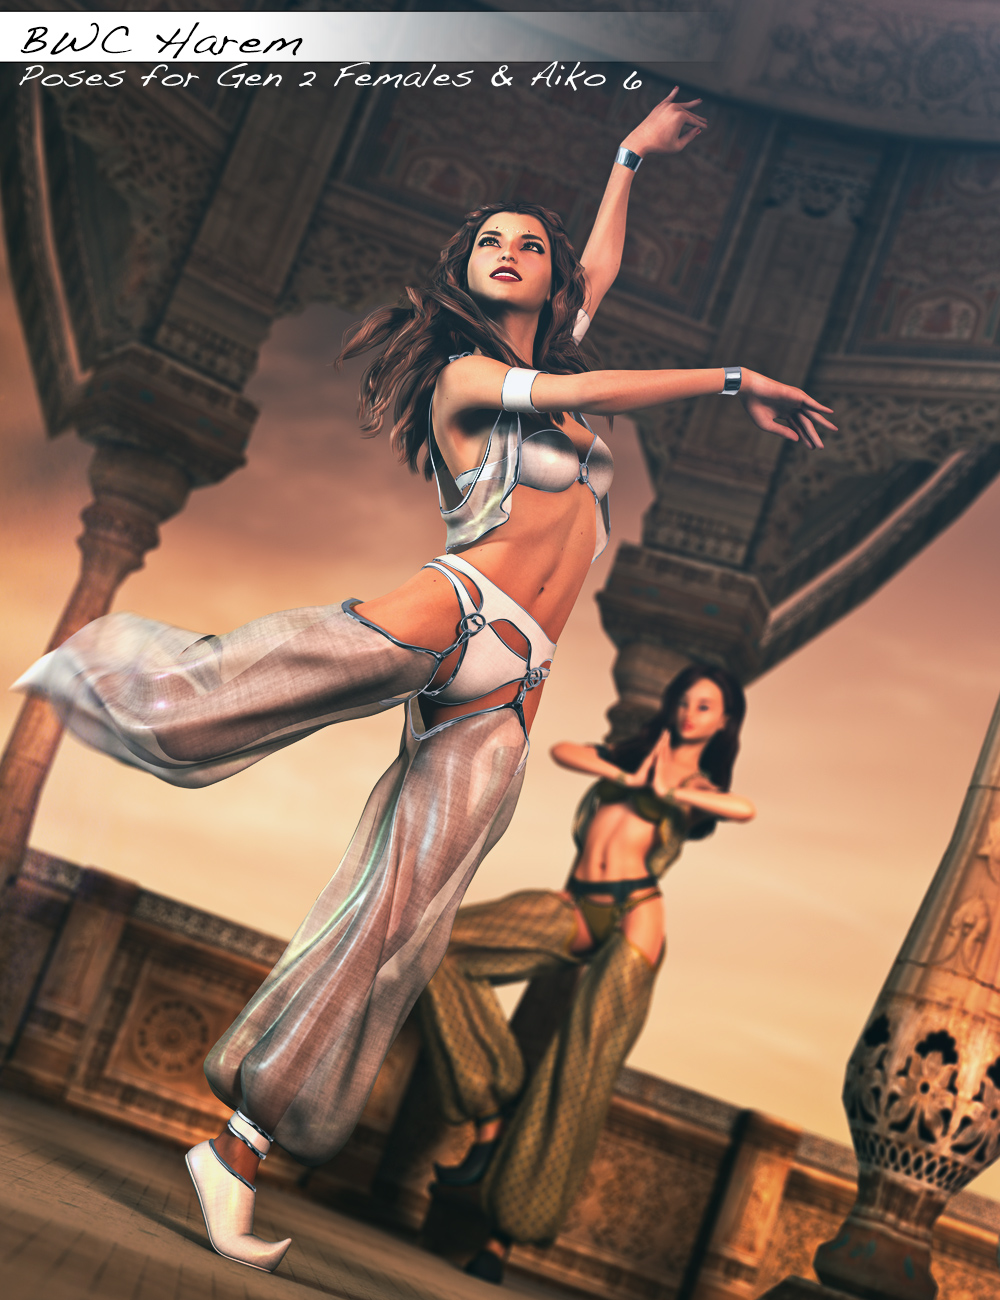 BWC Harem - Poses for Genesis 2 Female(s) and Aiko 6 by: Sedor, 3D Models by Daz 3D